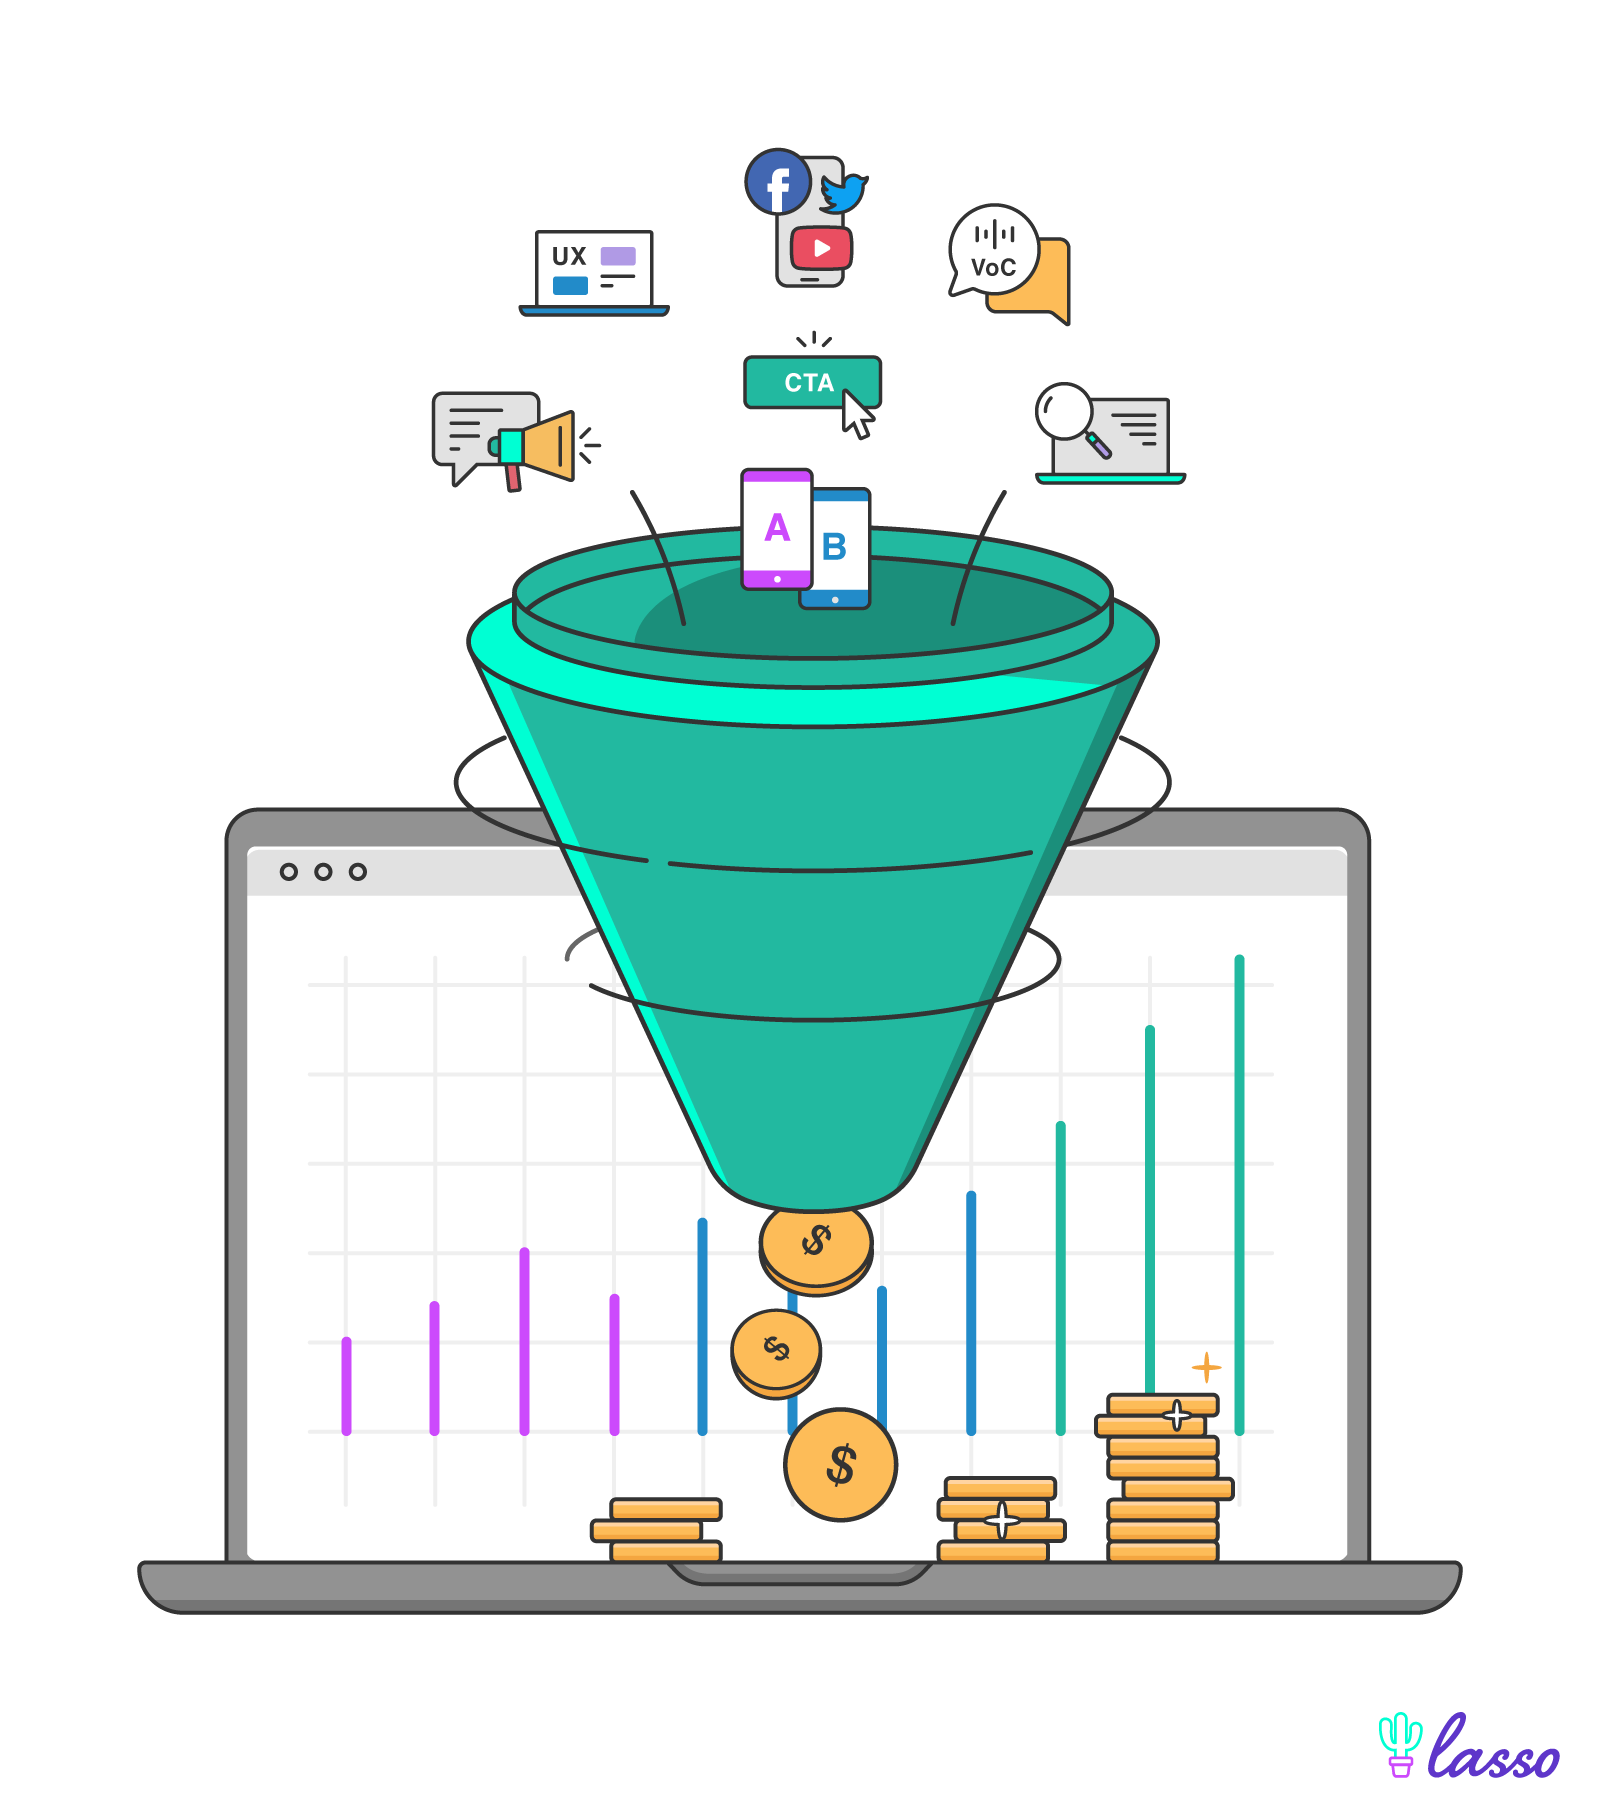 funnel converting icons into coins